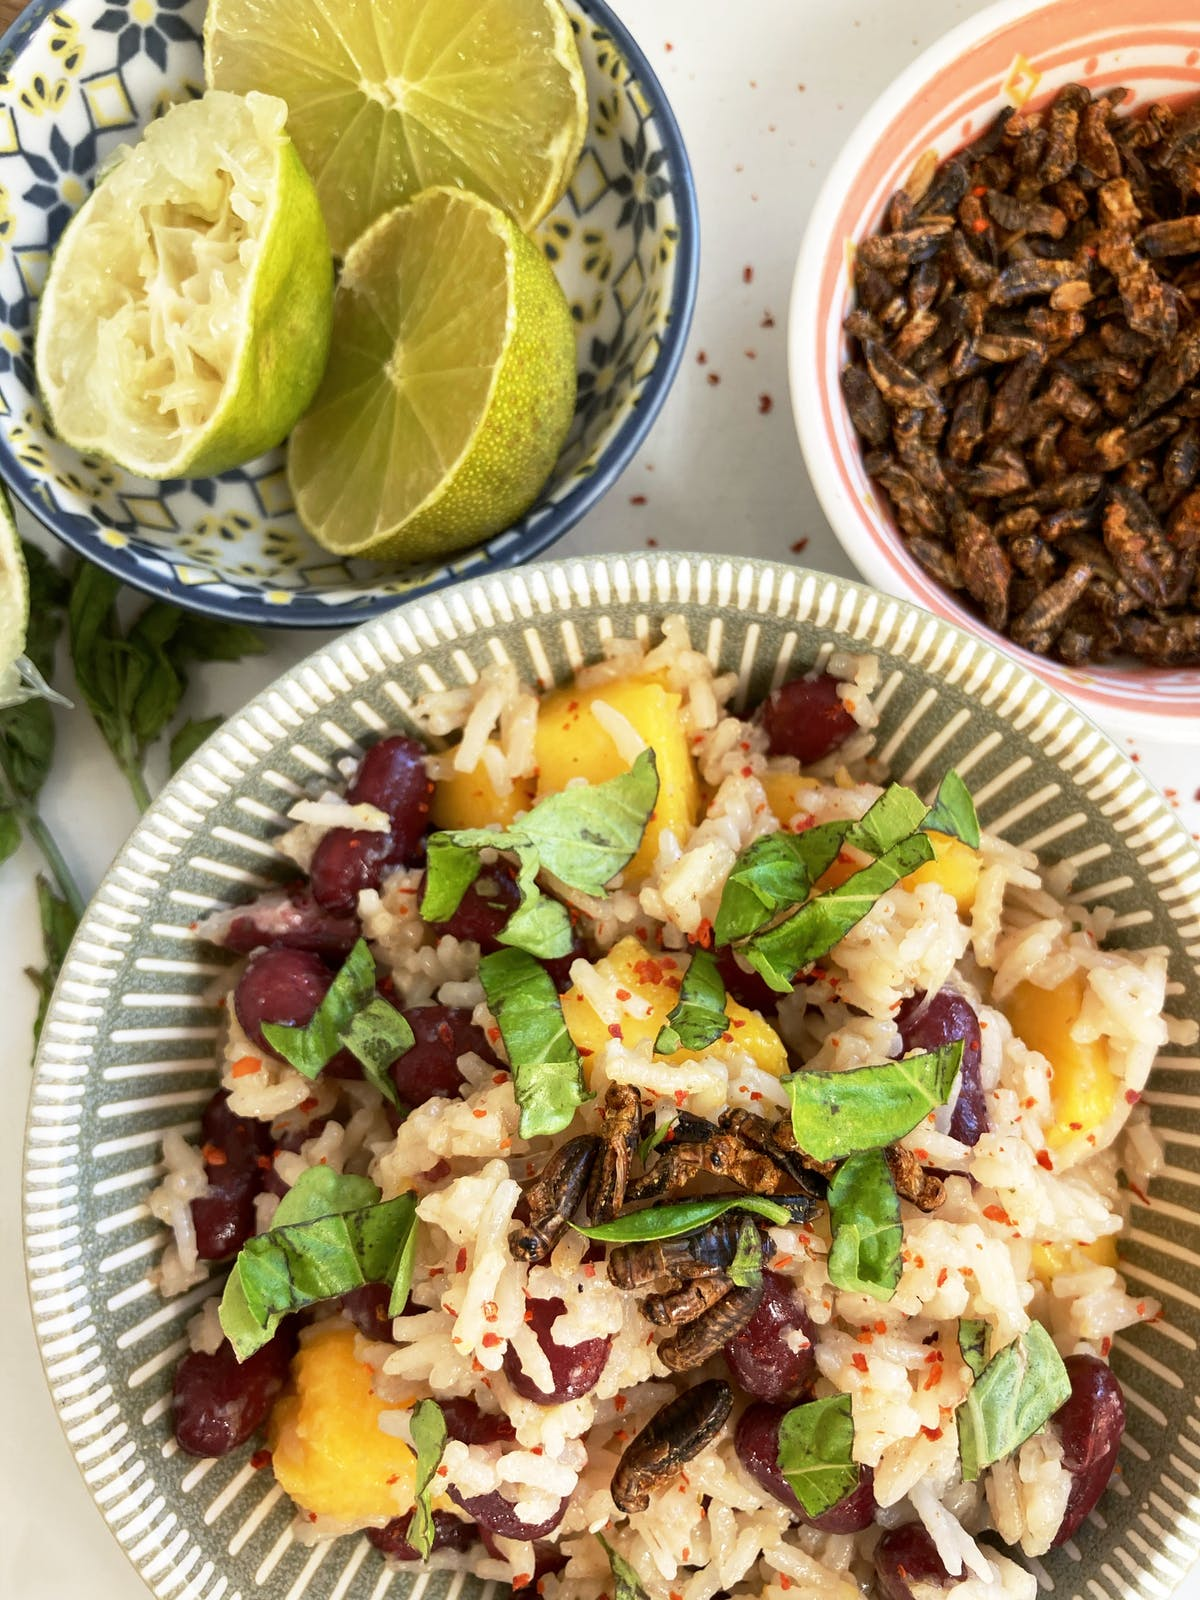 Thai Mango Sticky Rice with Roasted Insects and Lime in separate bowls